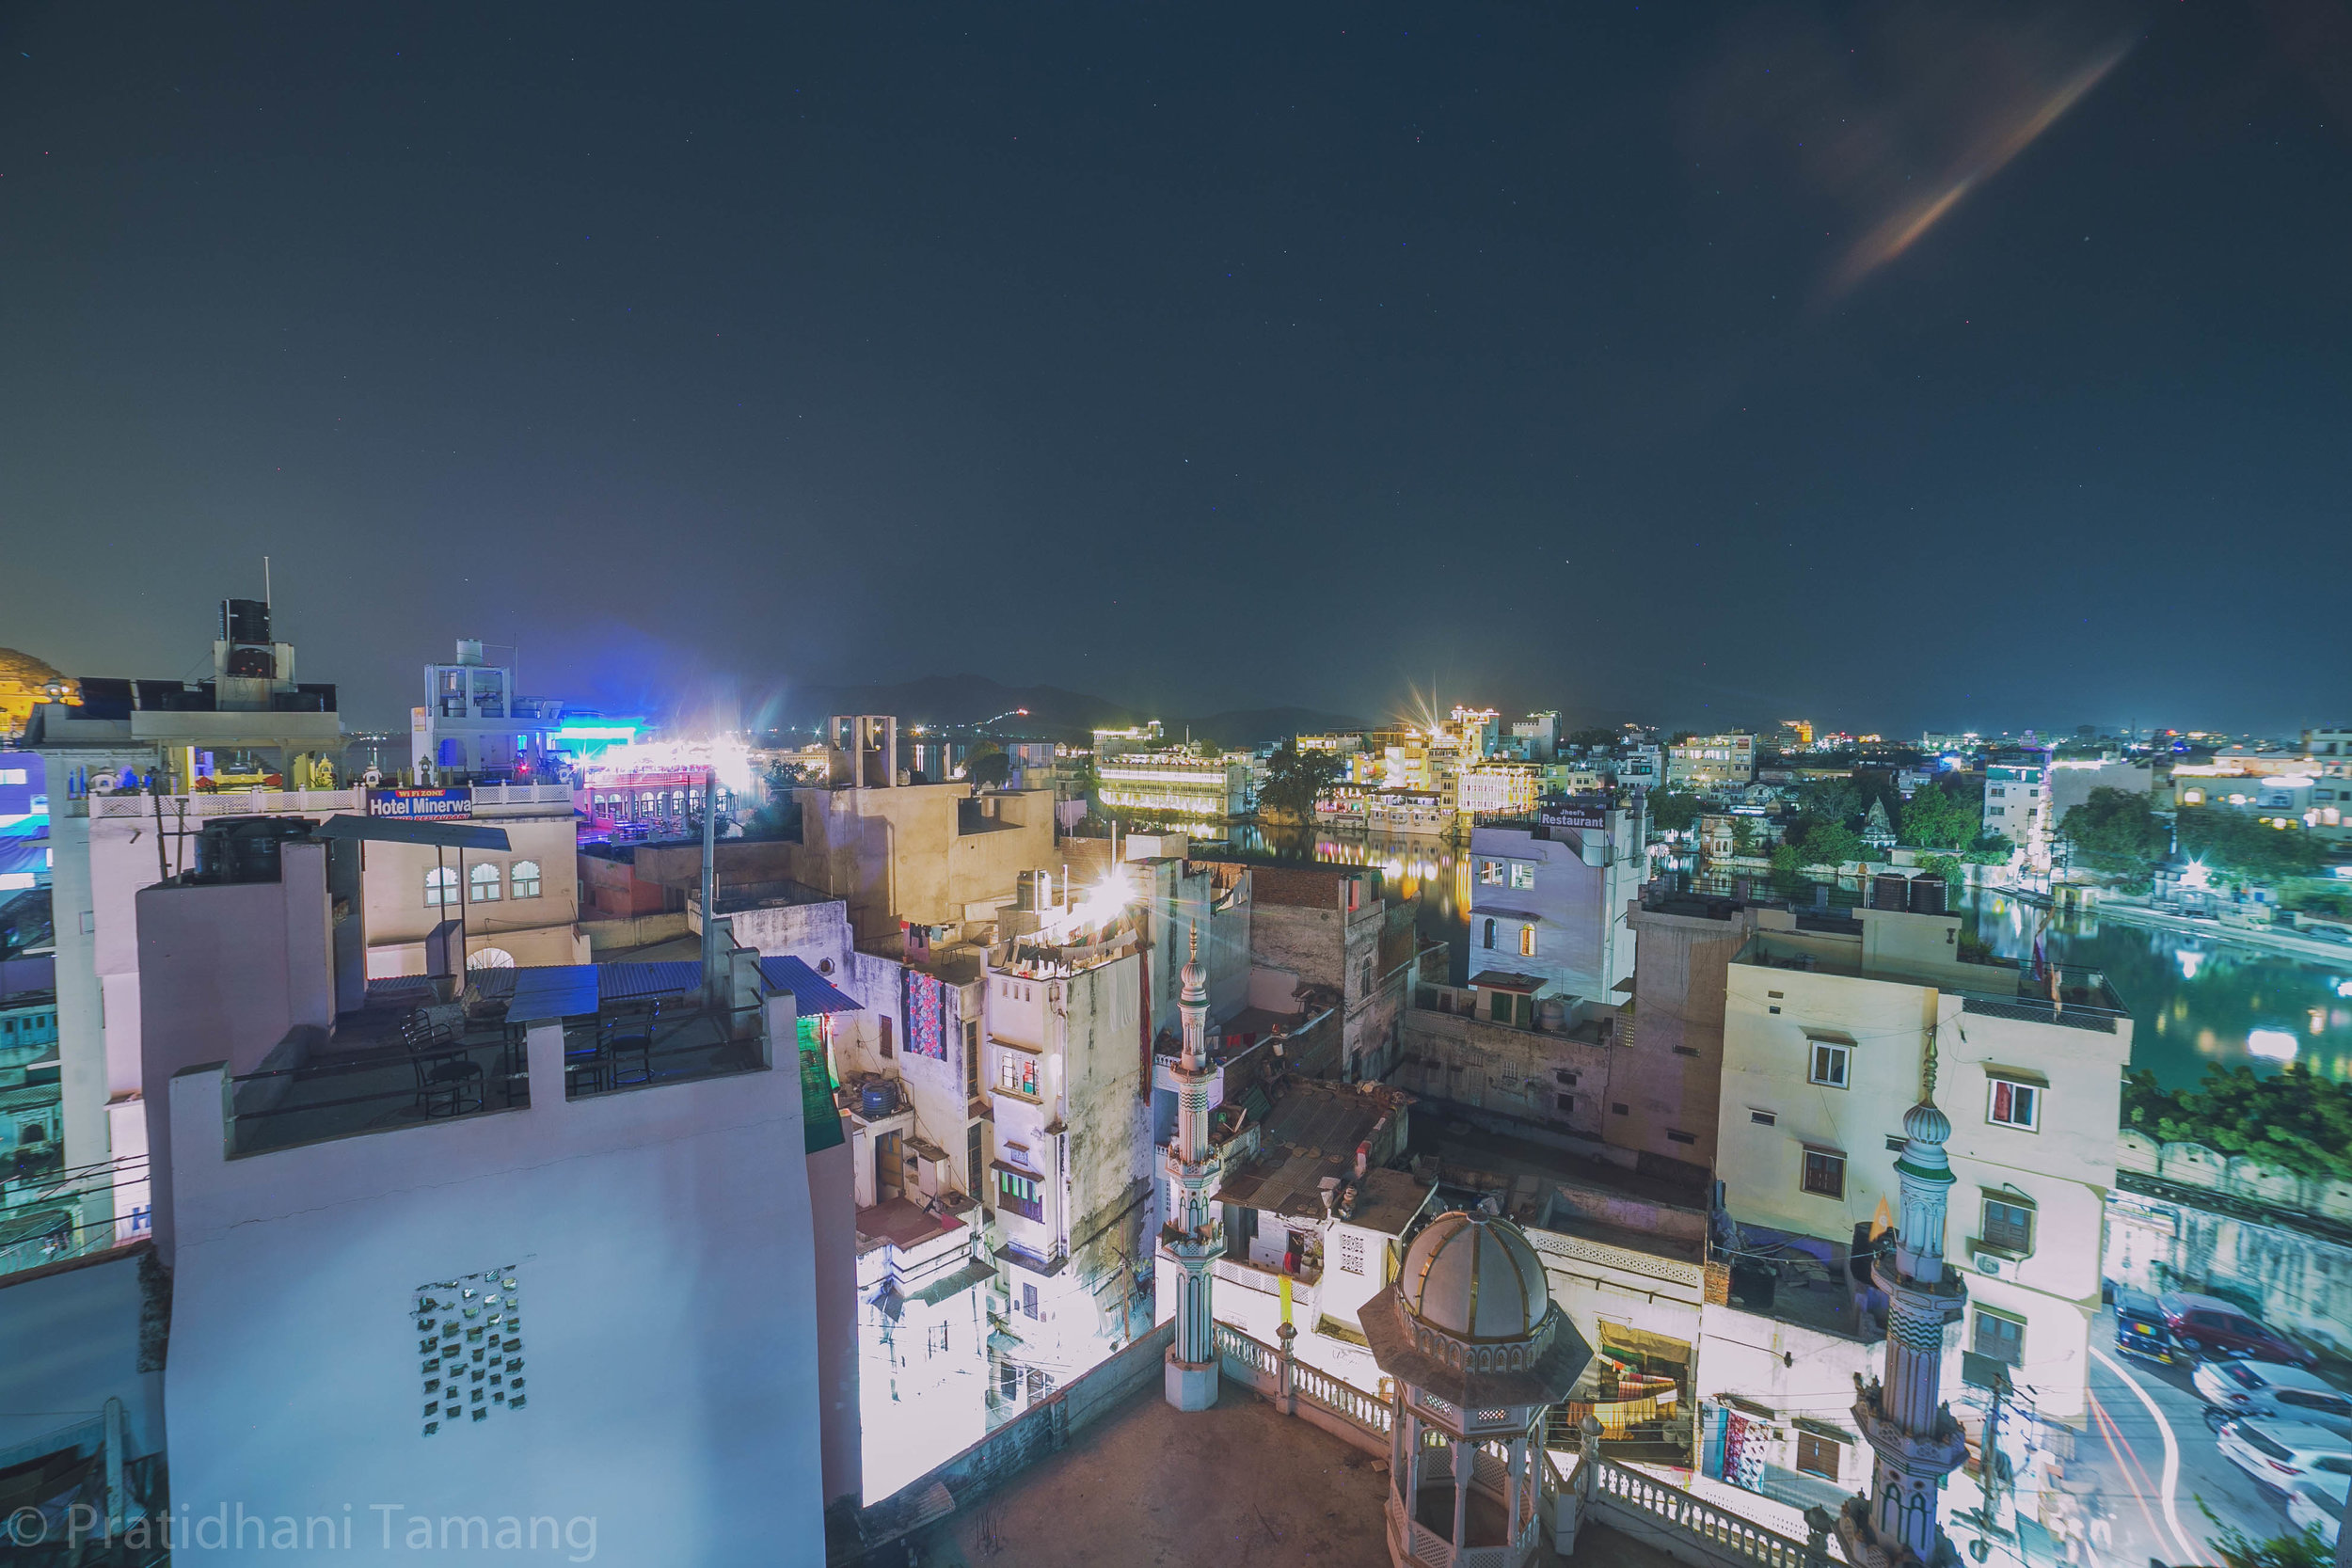 View from our hostel in Udaipur. We drank old monk and played cards till late. I can't remember the game anymore. we also met a random English guy who kept losing and got wrecked.